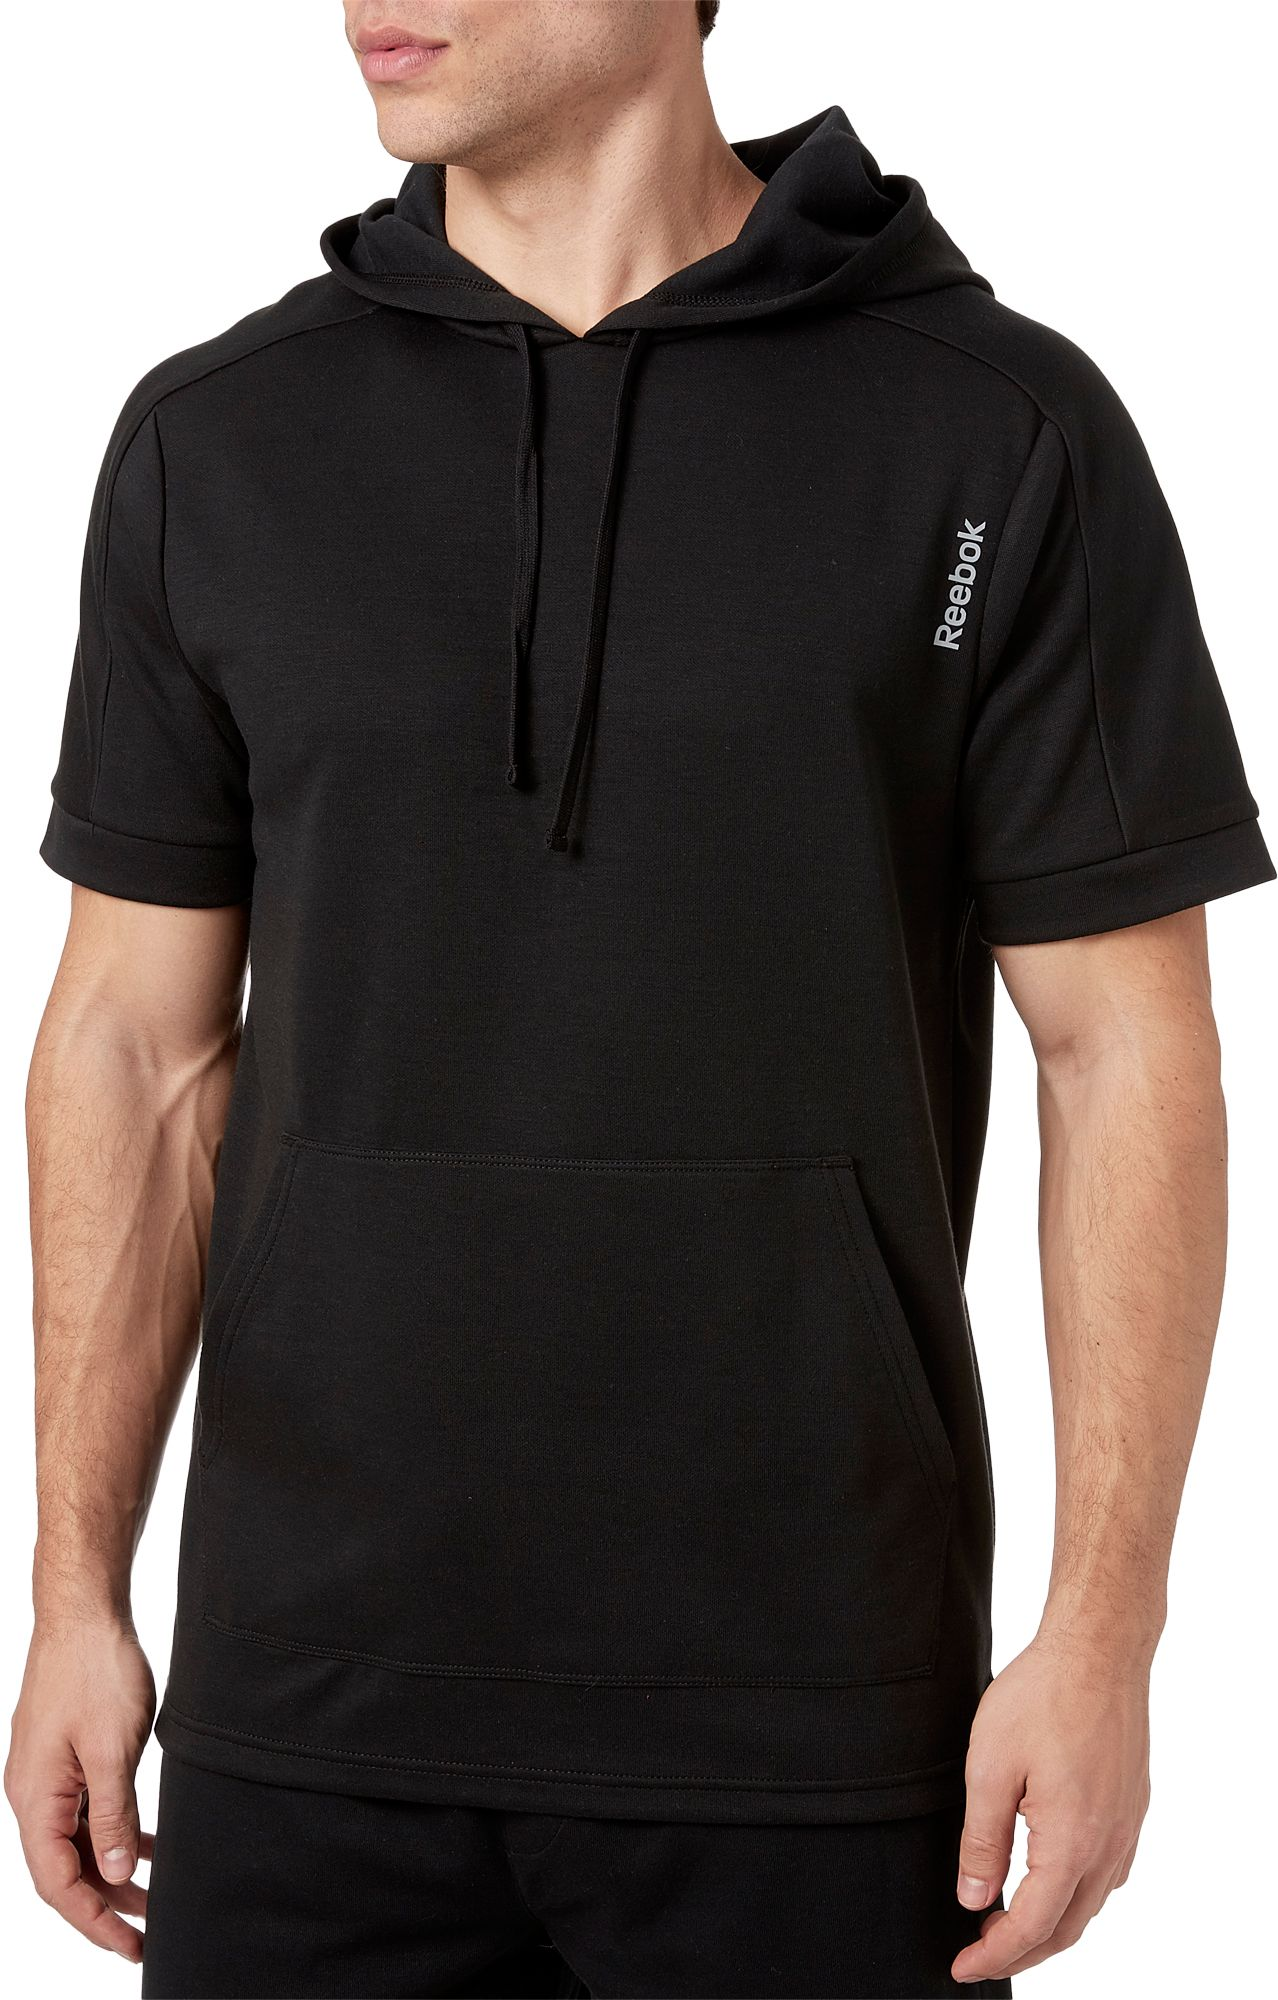 Reebok Men's Double Knit Short Sleeve Hoodie by Reebok